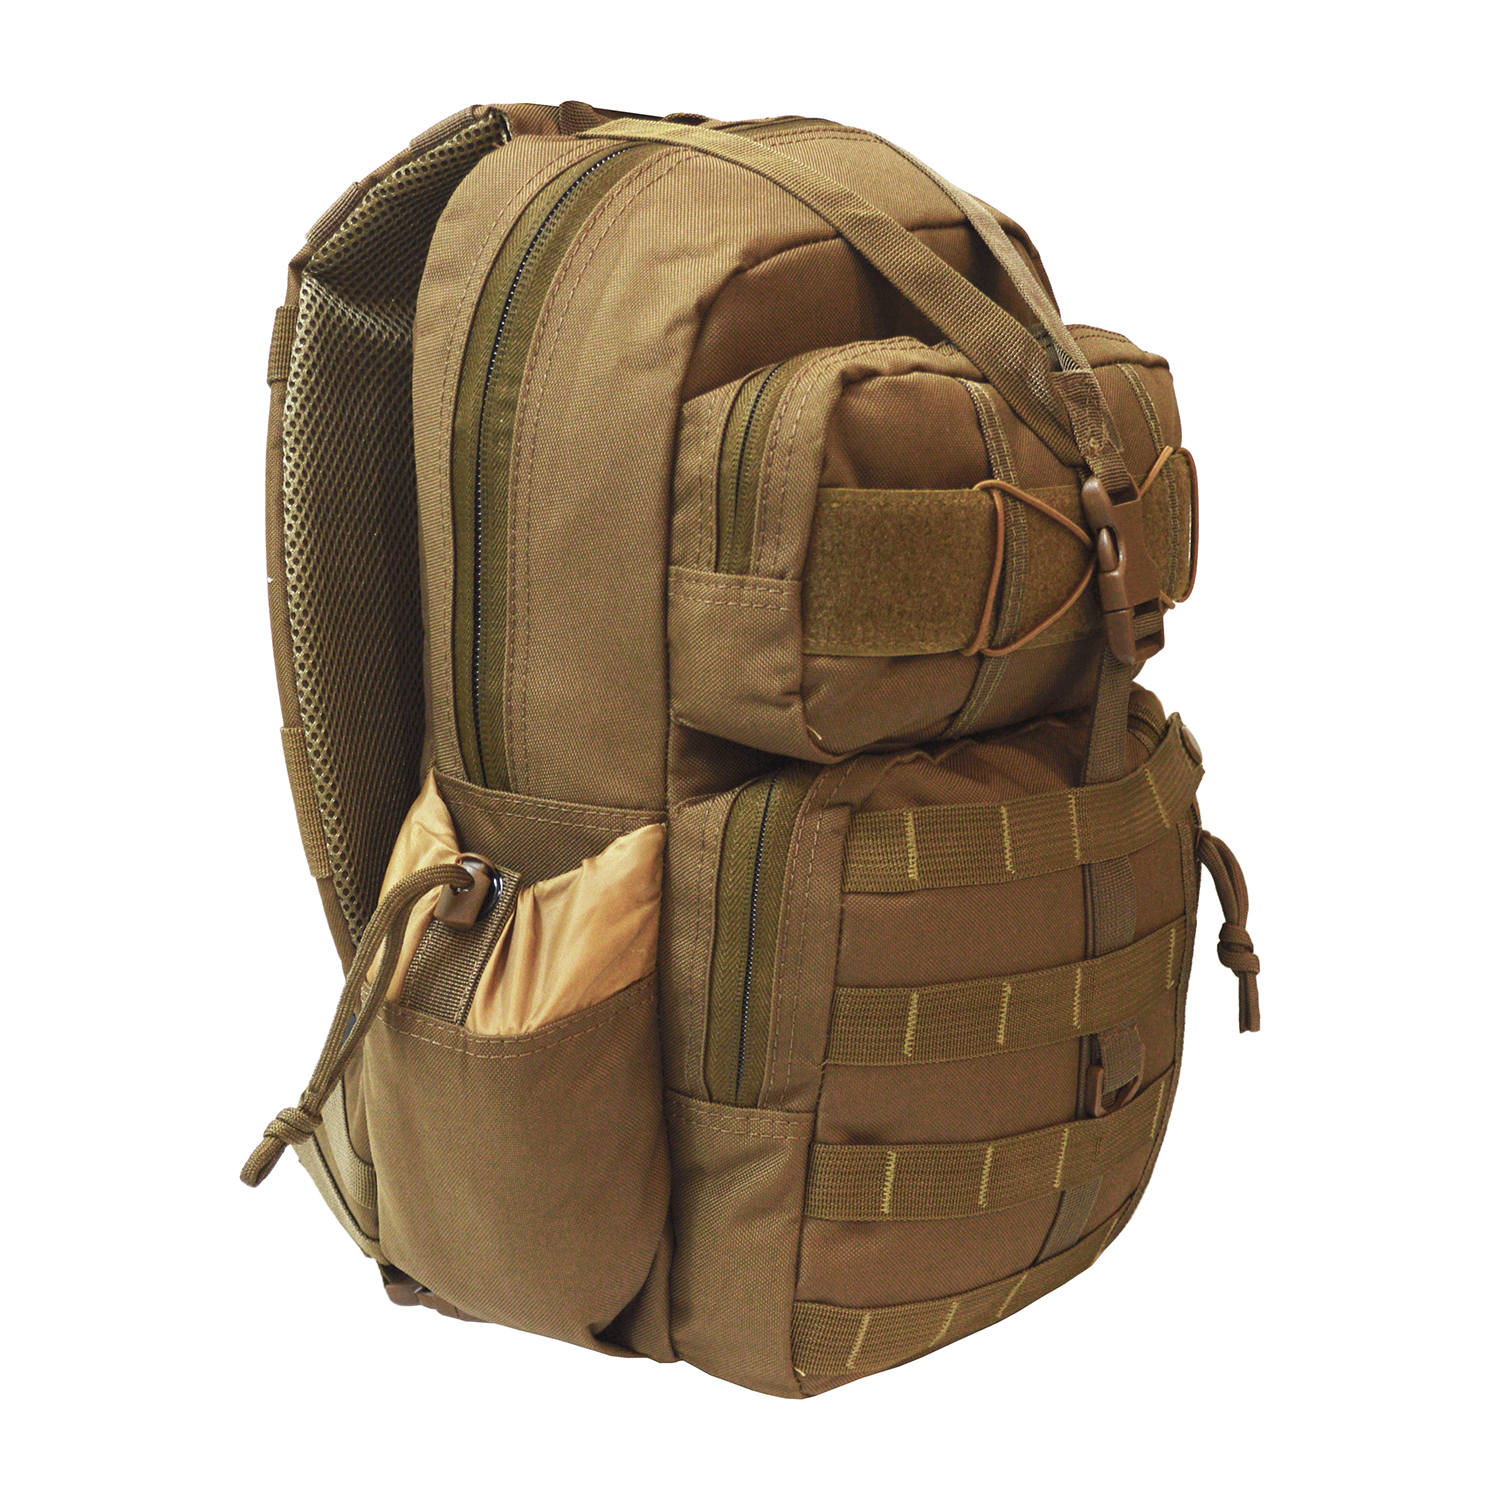 Every Day Carry Tactical Sling Day Pack MOLLE Hydration Ready ...